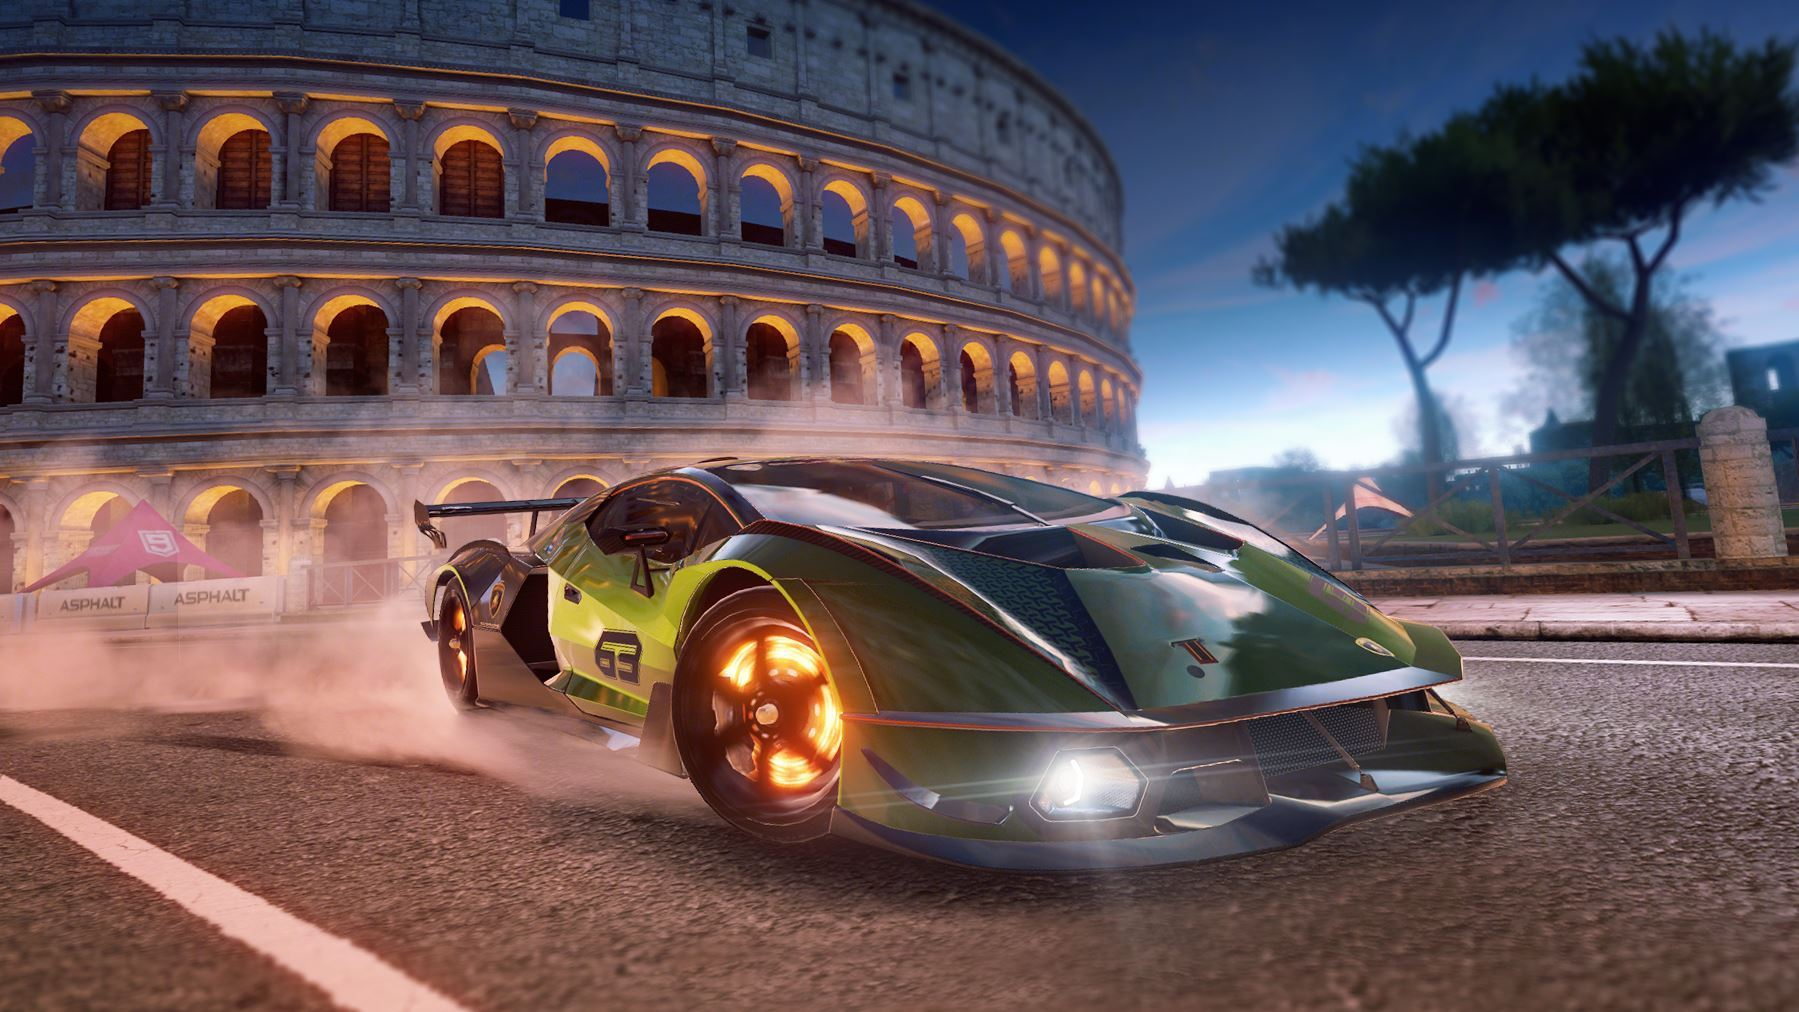 Lamborghini makes its debut in the Asphalt 9: Legends video game with the Essenza SCV12 - Image 4